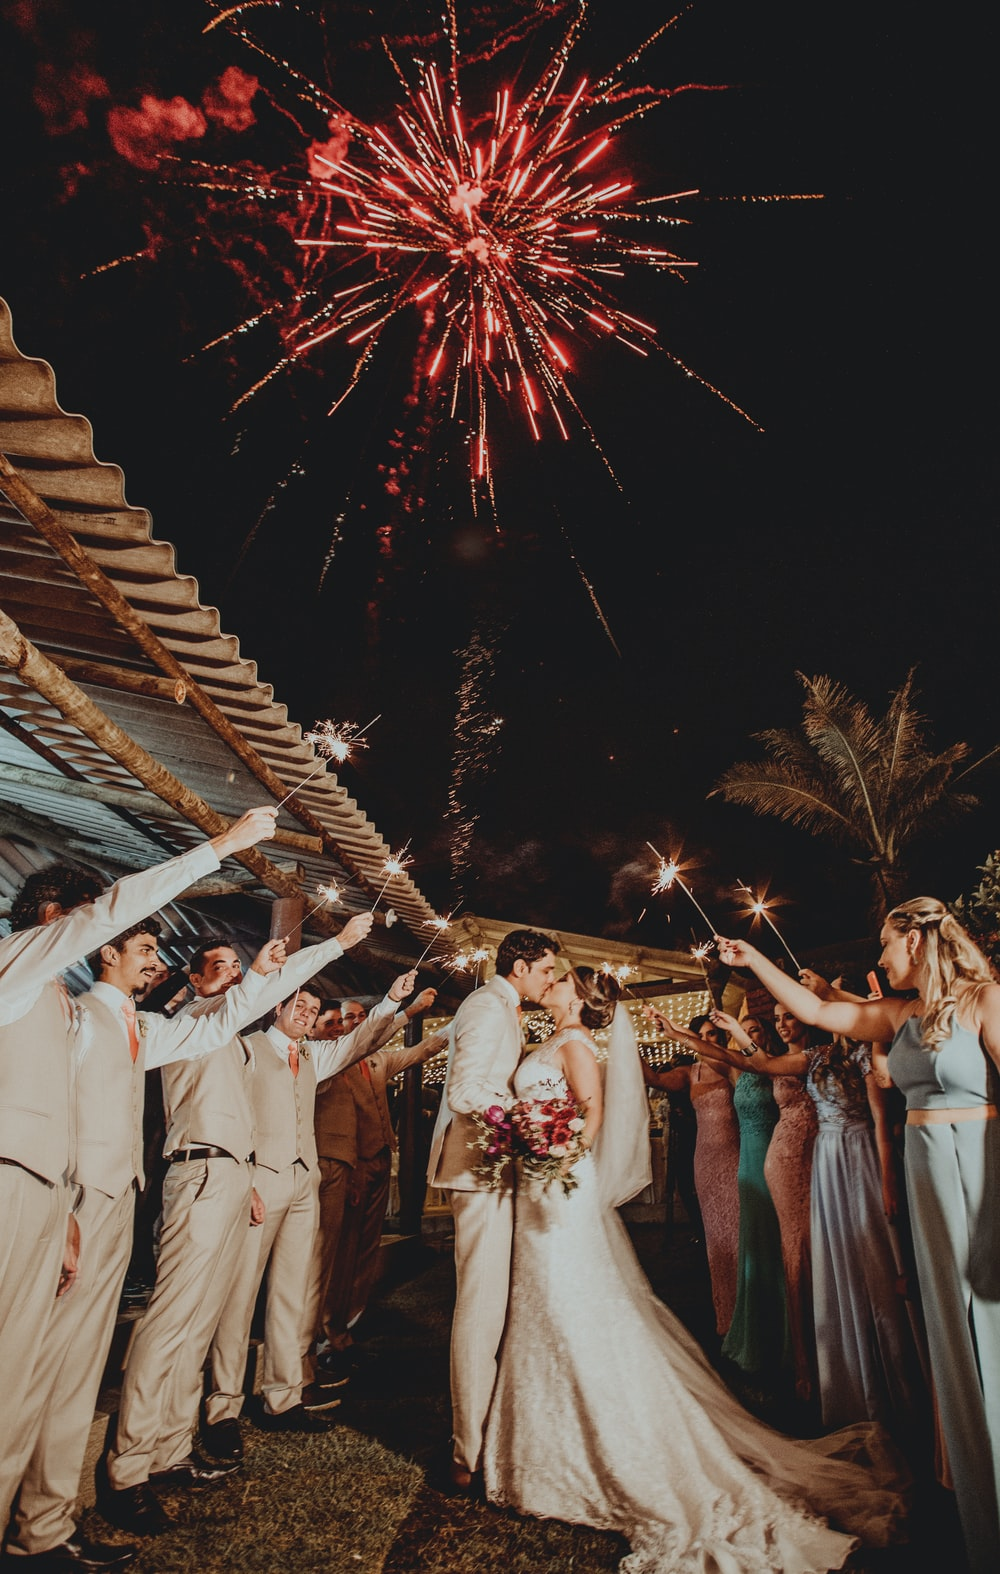 man and woman wedding couple kissing under fireworks